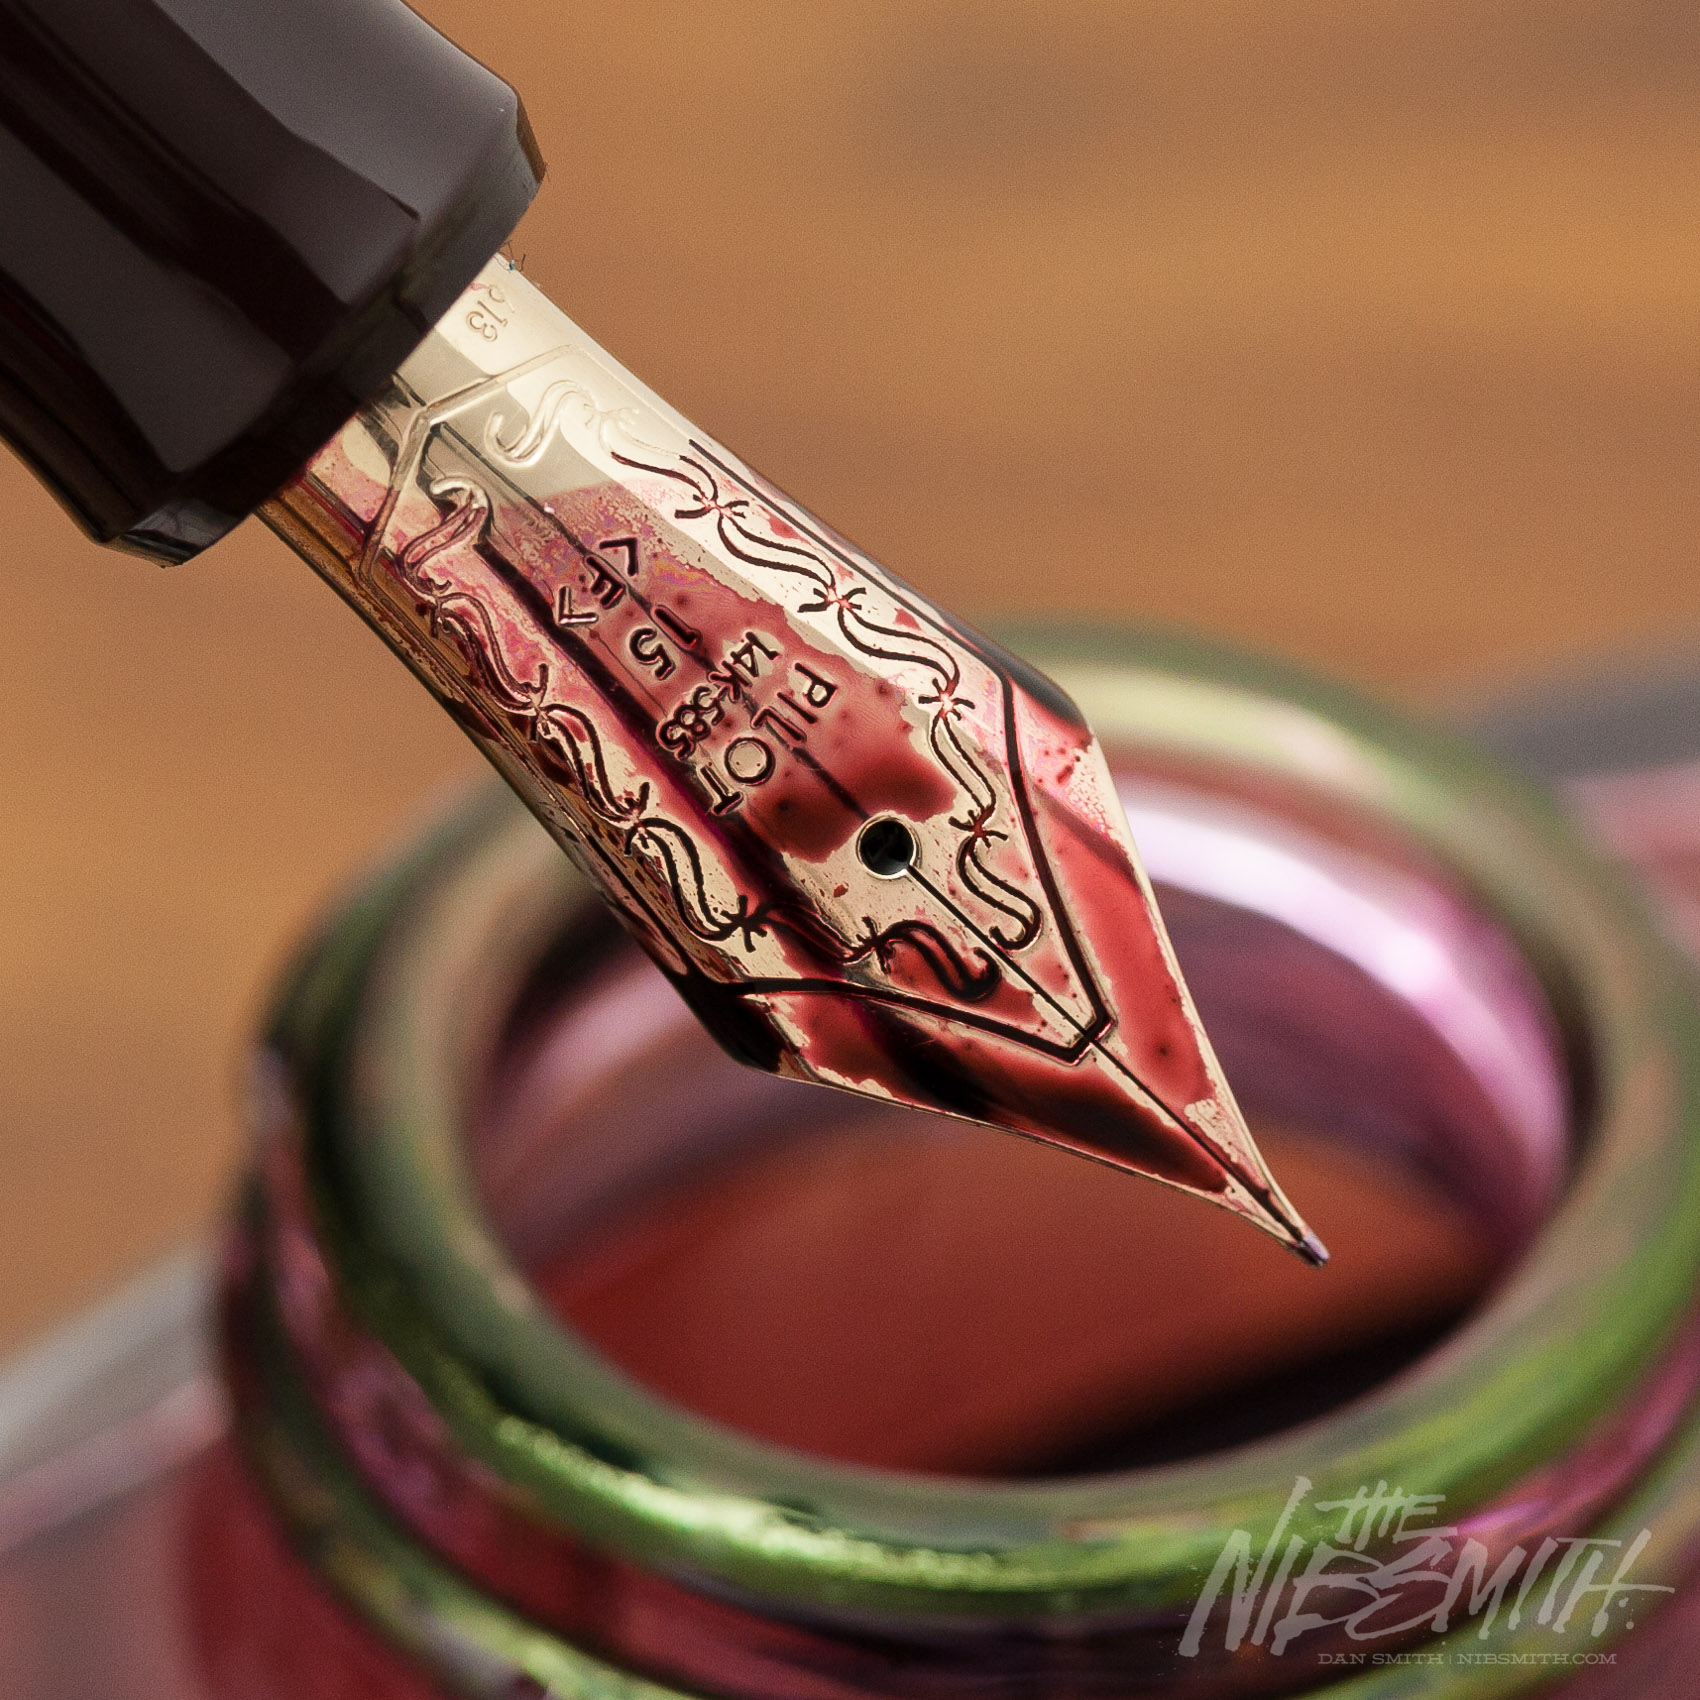 pilot_custom_823_fountain_pen_nibsmith-32